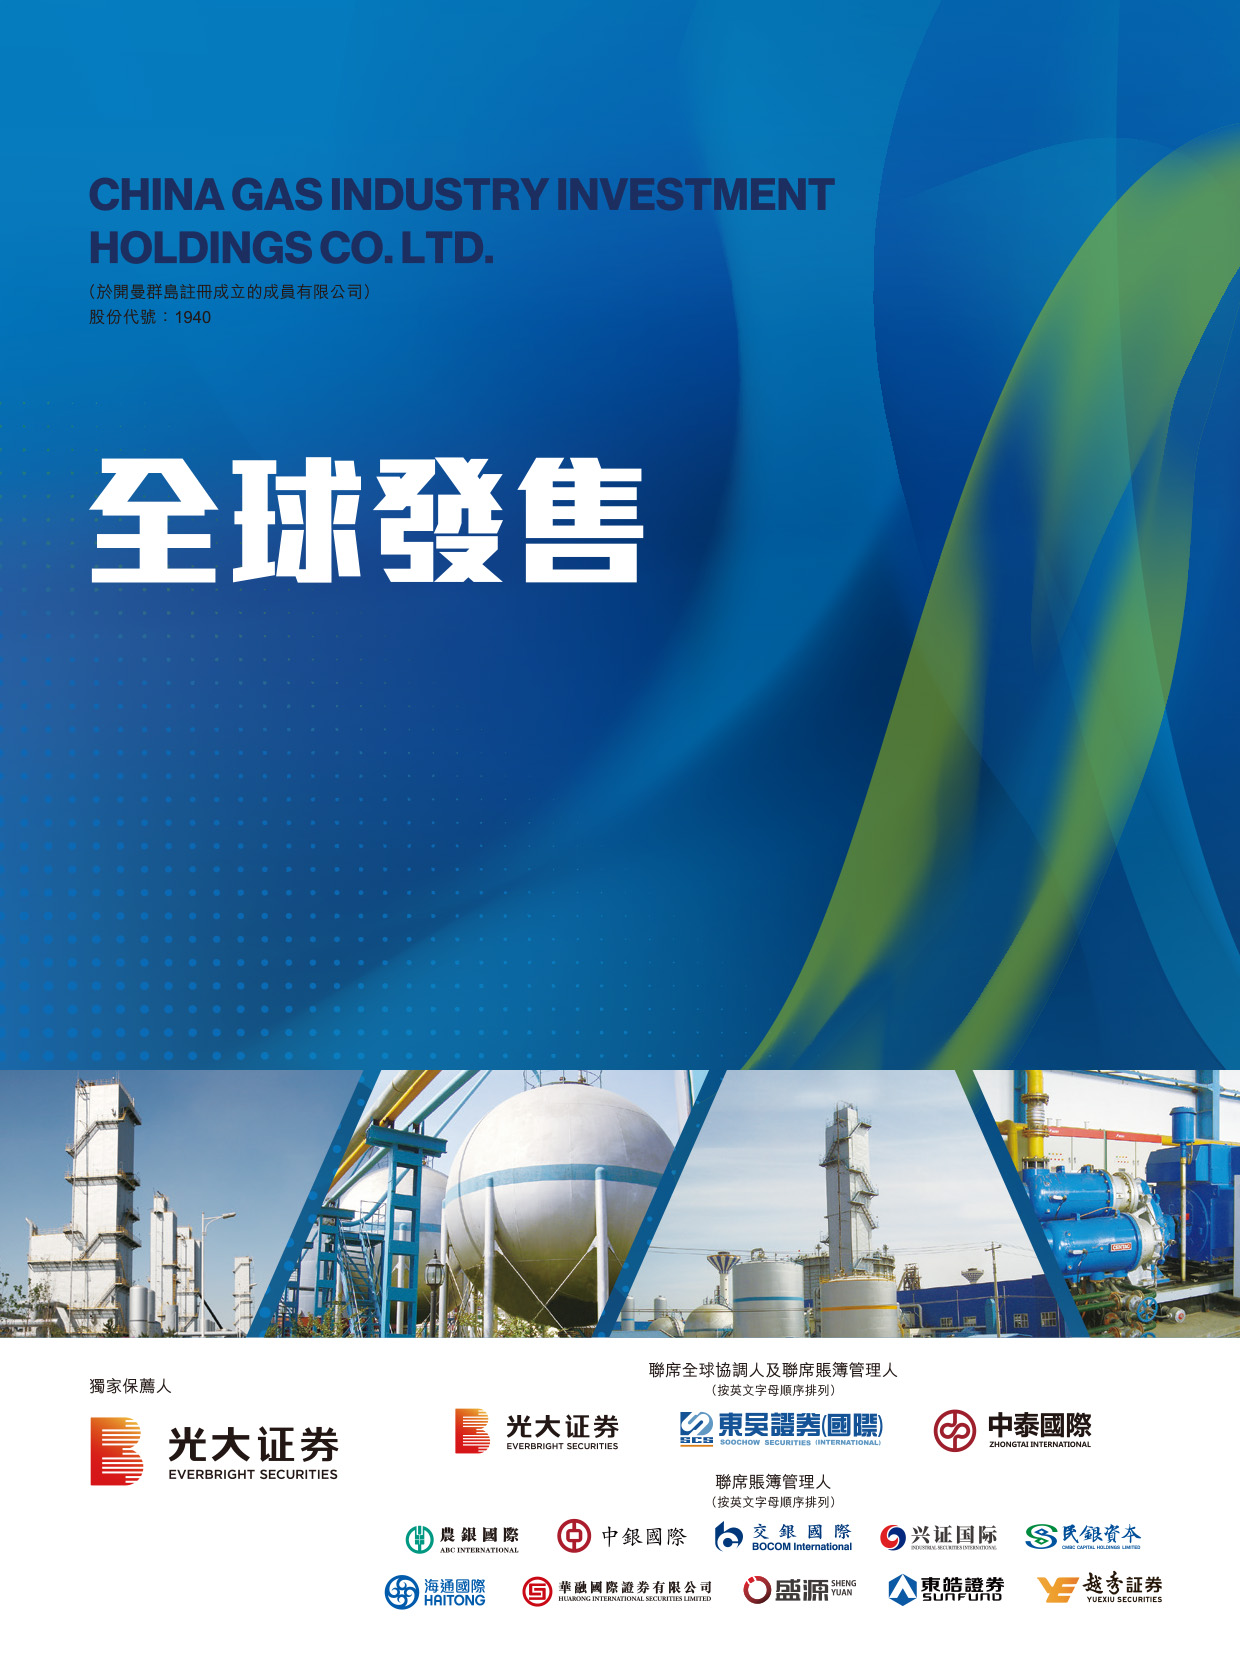 CHINA GAS INDUSTRY INVESTMENT HOLDINGS CO. LTD.